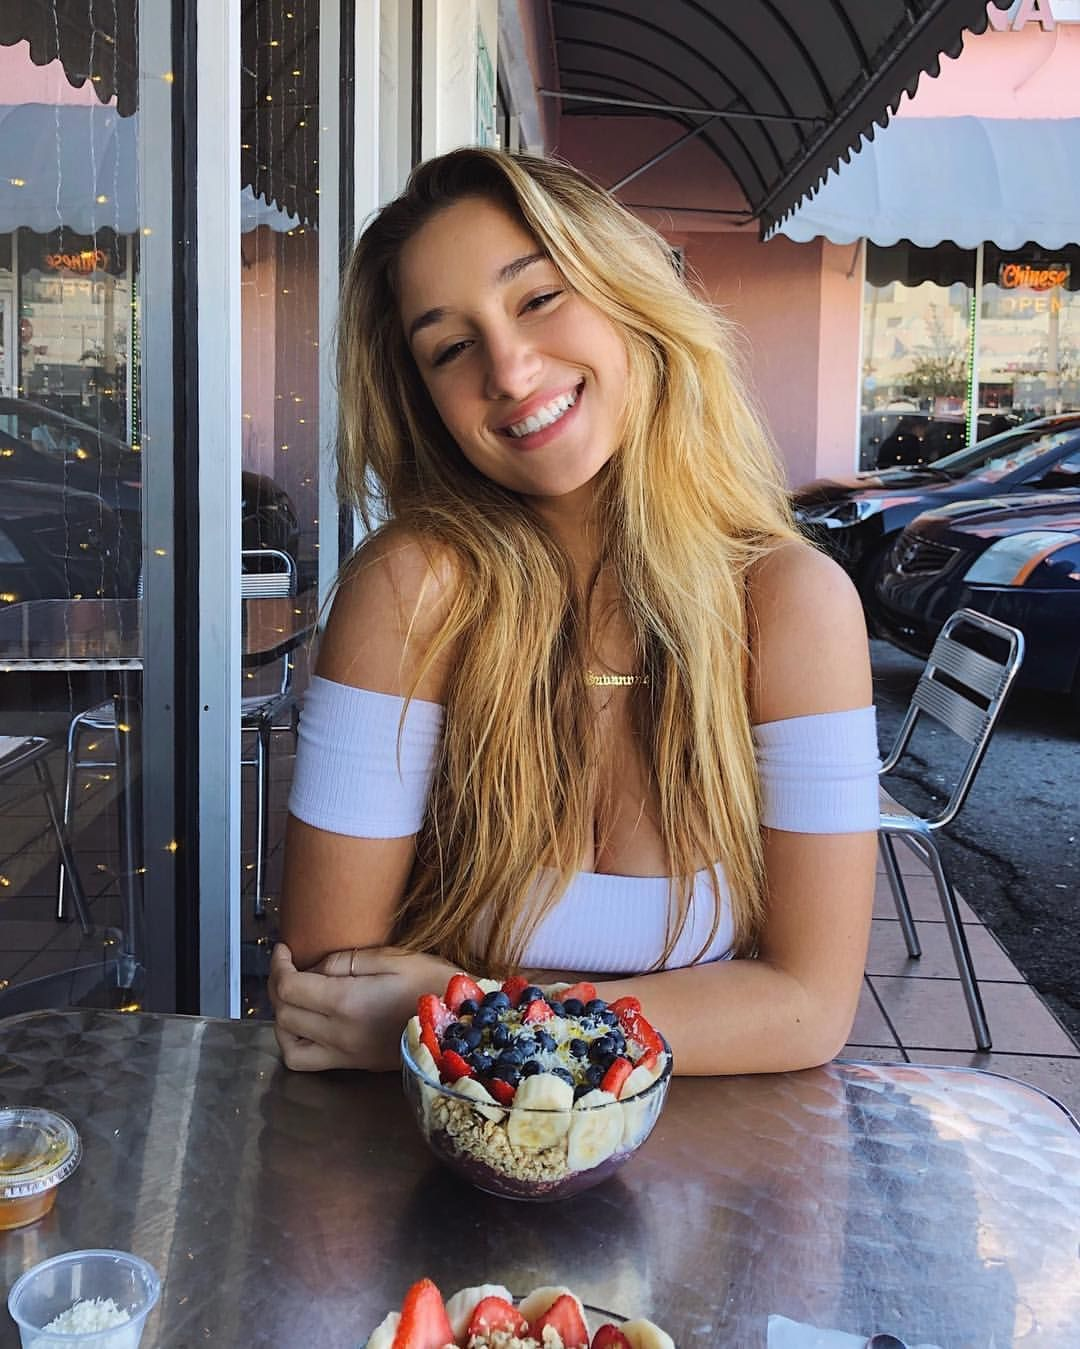 Savannah Montano Savmontano Instagram Photos And Videos